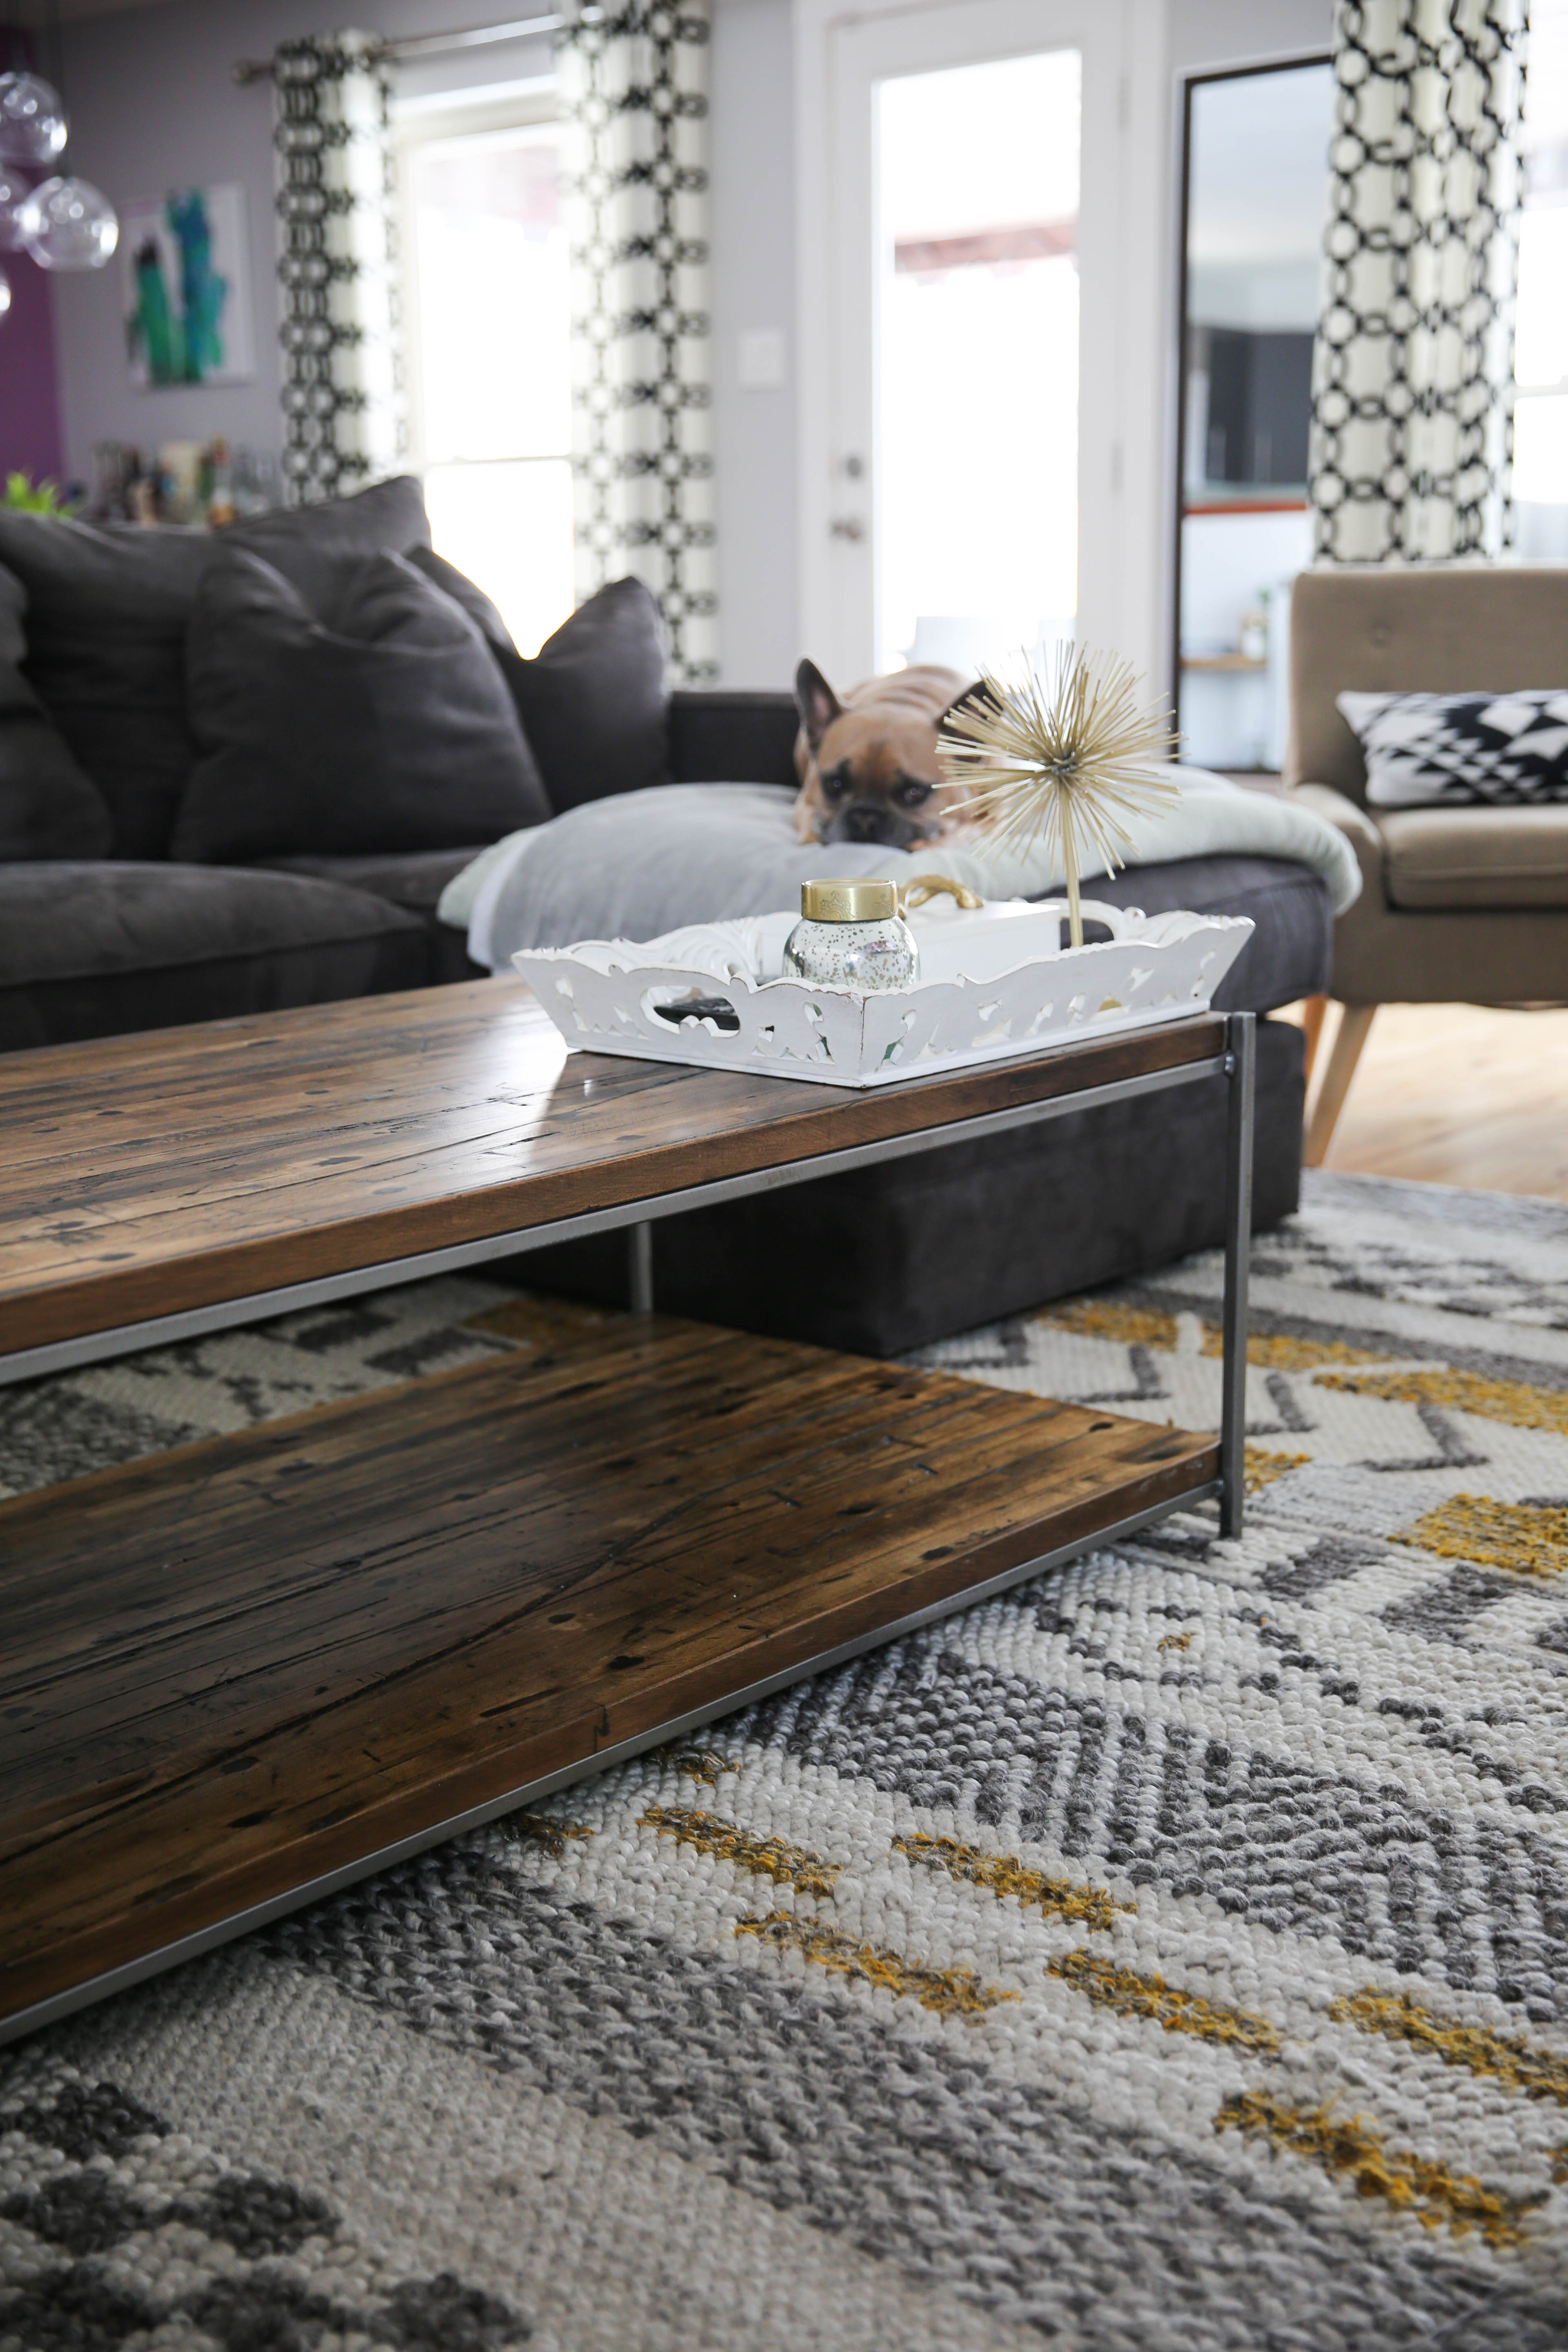 PaleOMG - Finding the Perfect Statement Rug for Your Room